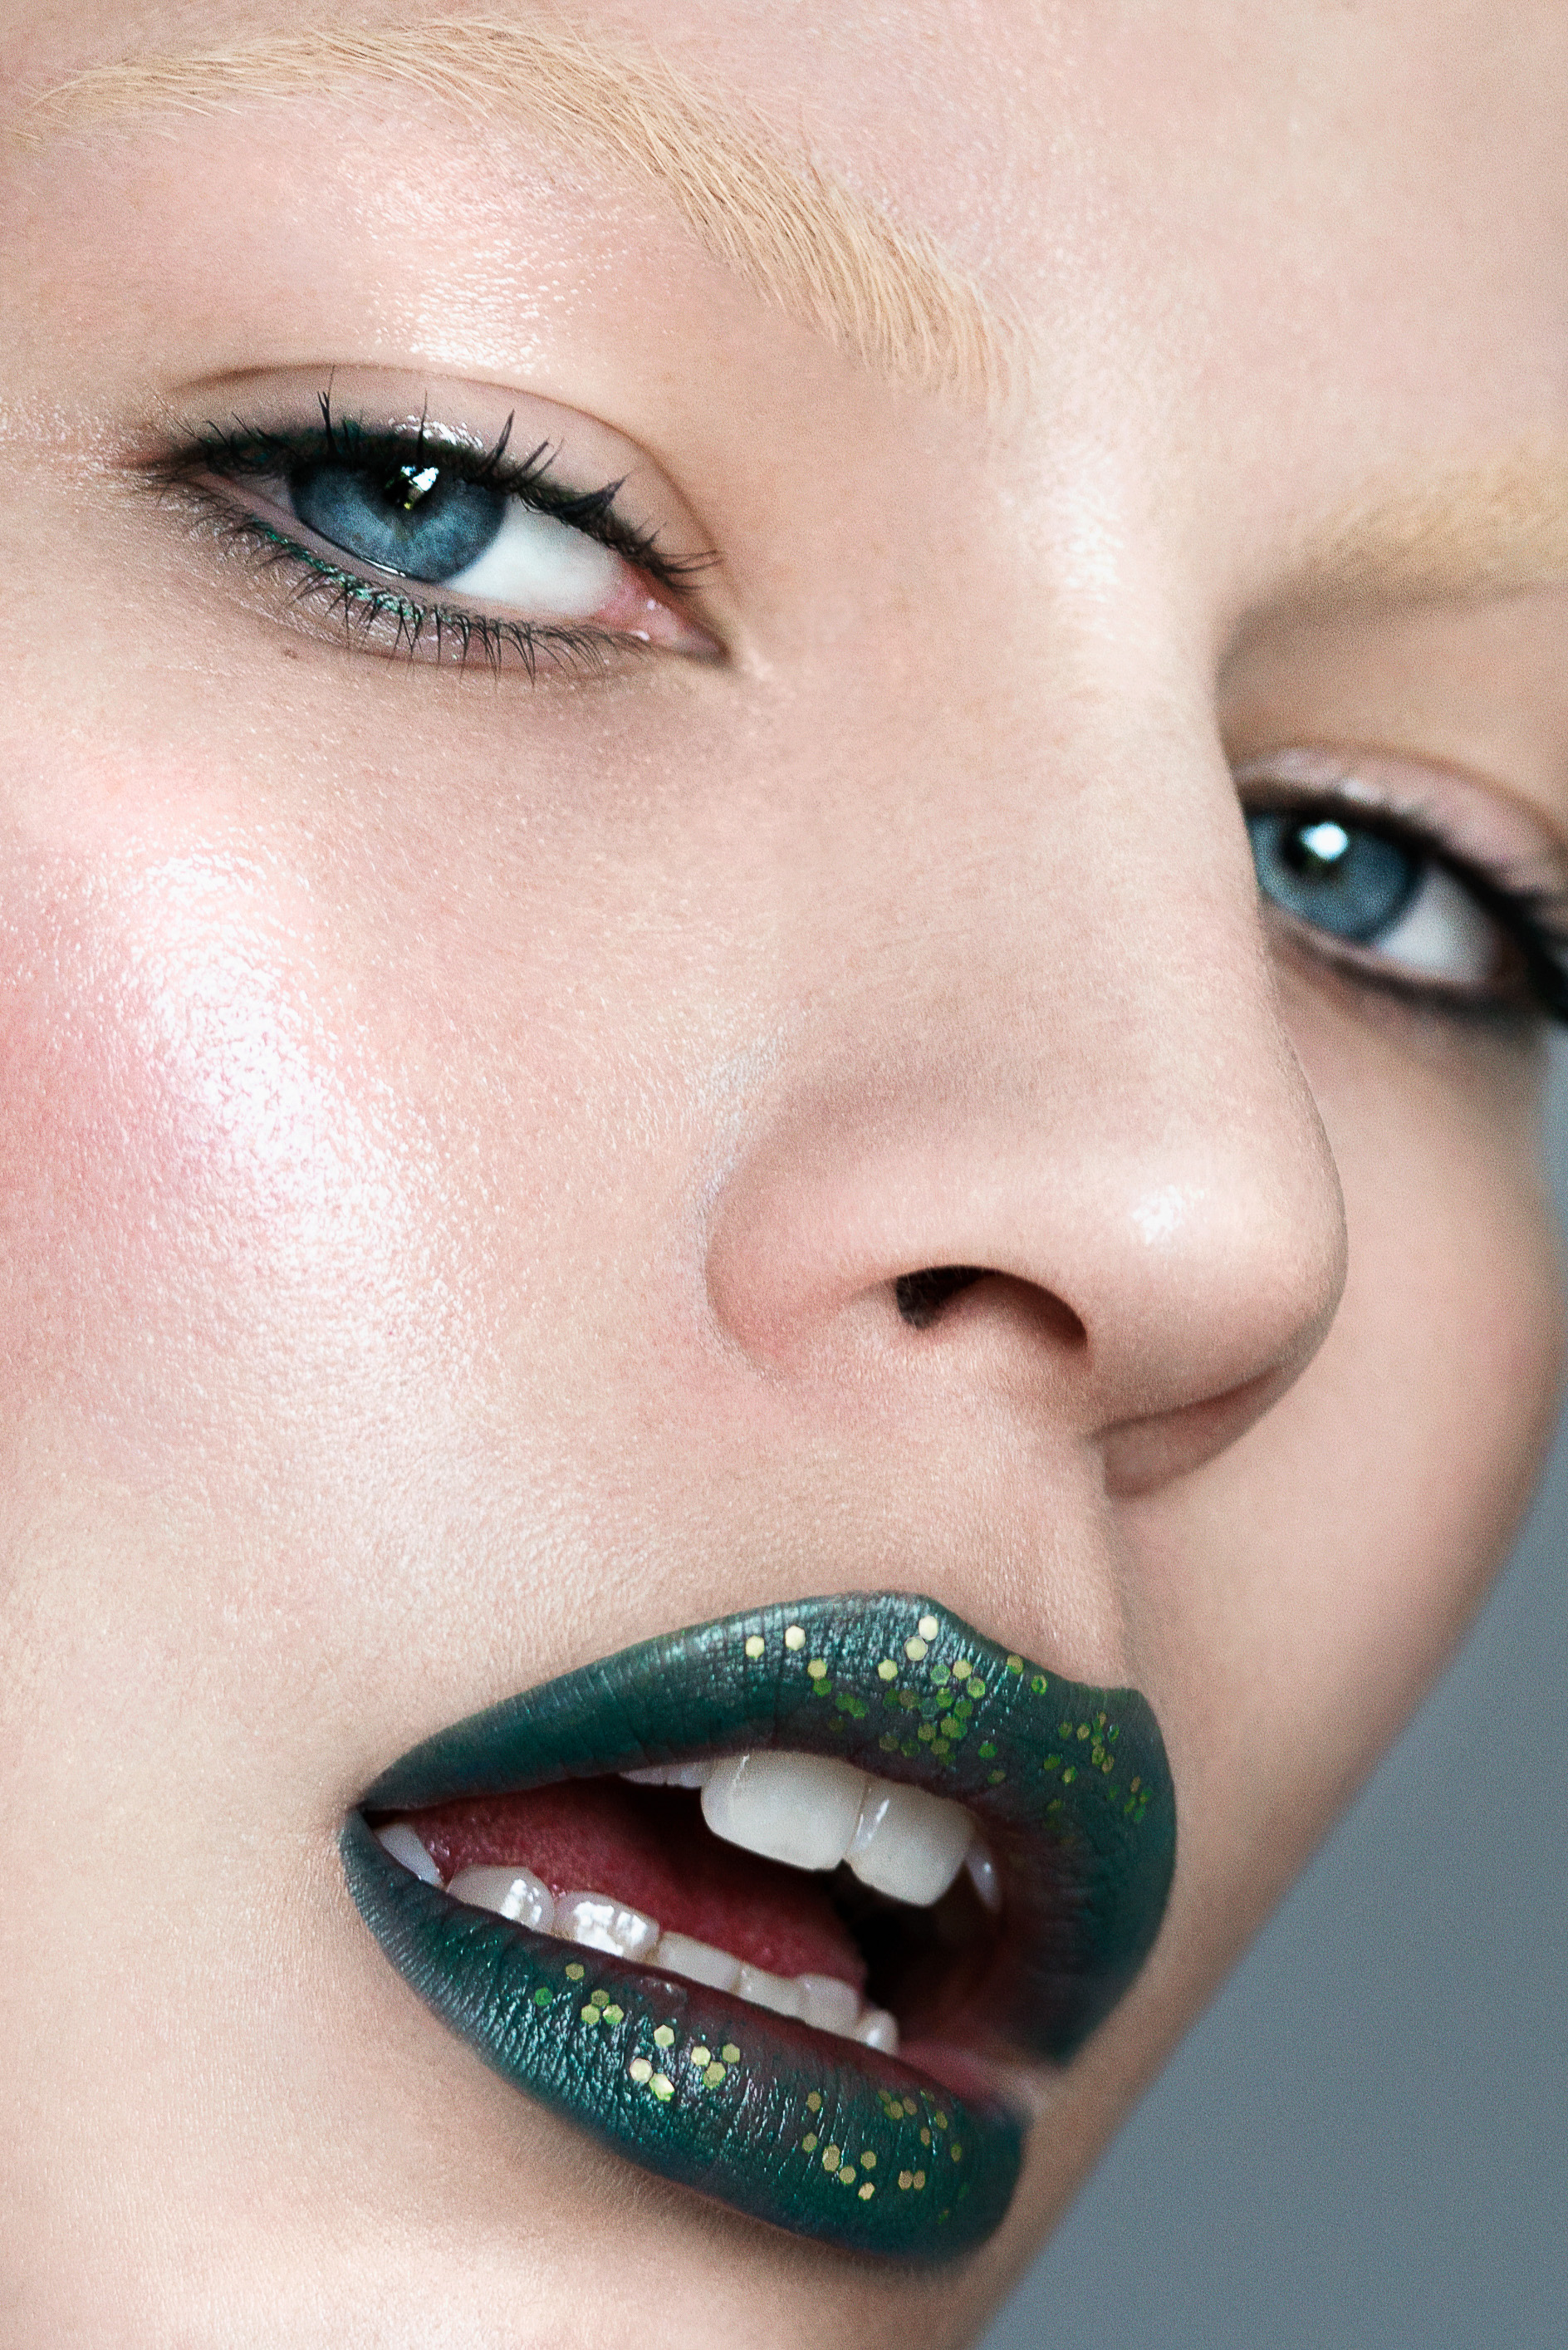 EXPLORING GREEN BEAUTY WITH GREEN MAKEUP   Image by  Kass Bruni